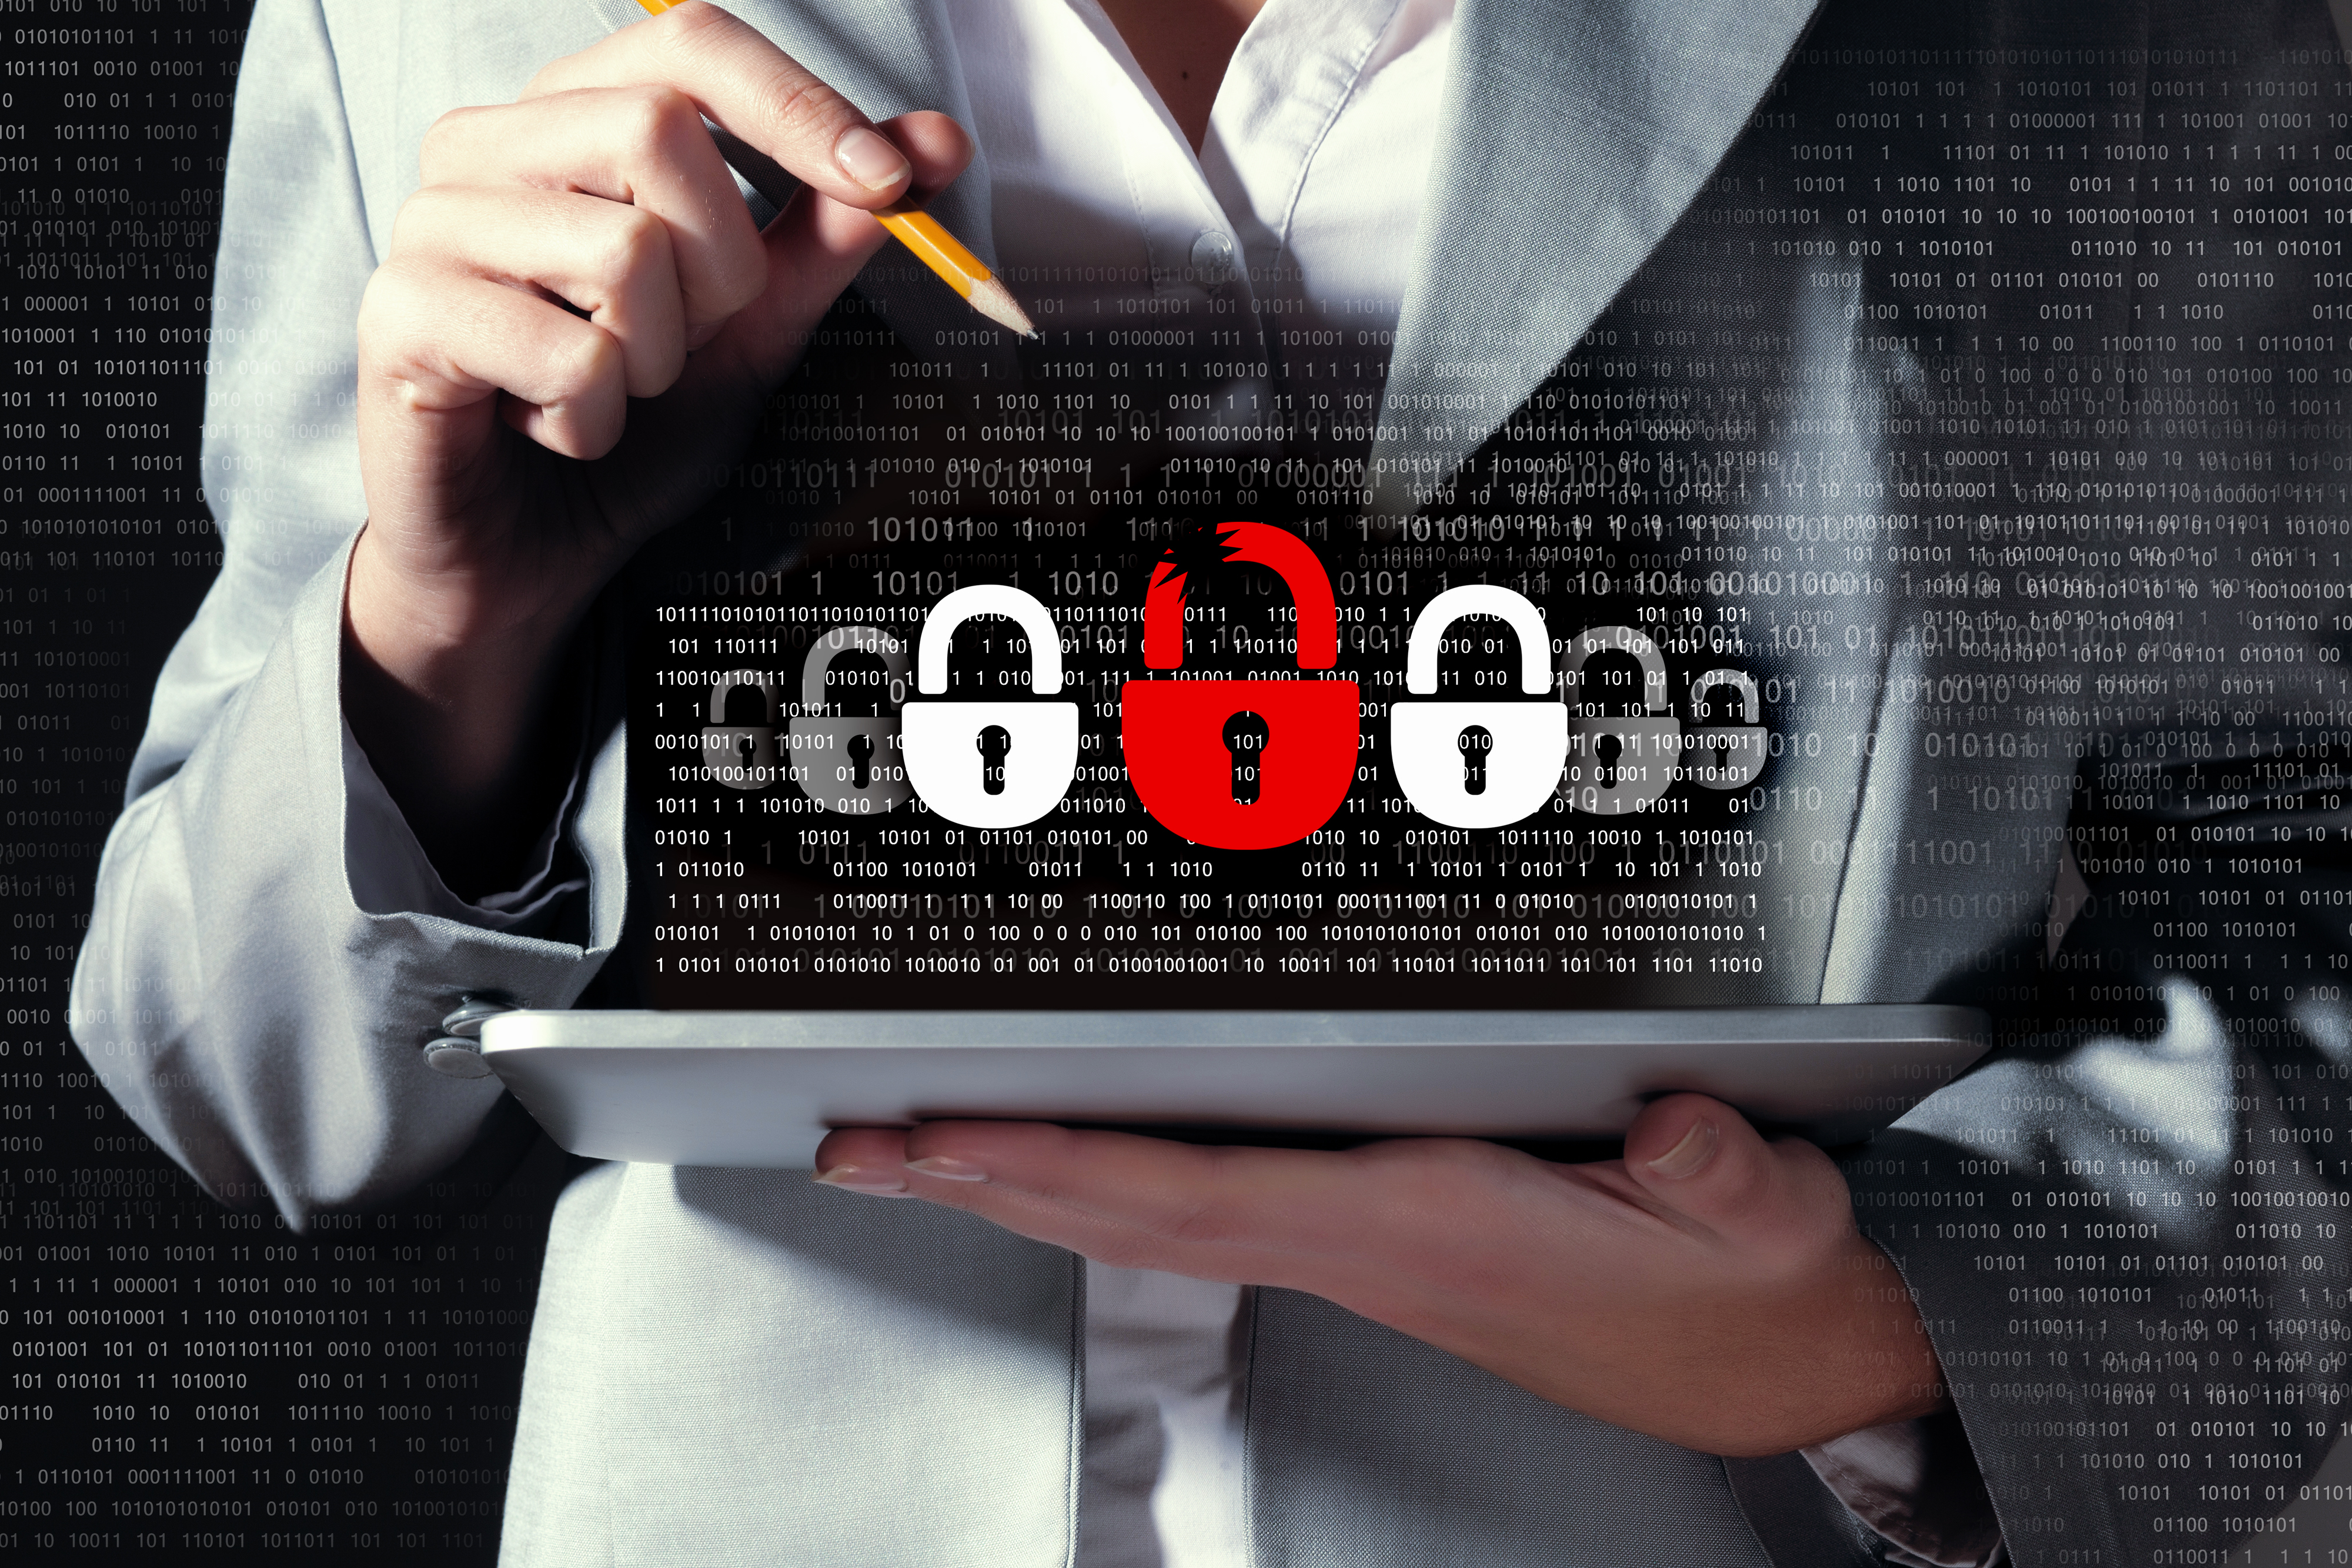 security and confidentiality We, as ngn bilgi ve i̇letişim hizmetleri ticaret aş (company), place importance to protecting the confidentiality and security of your personal data.